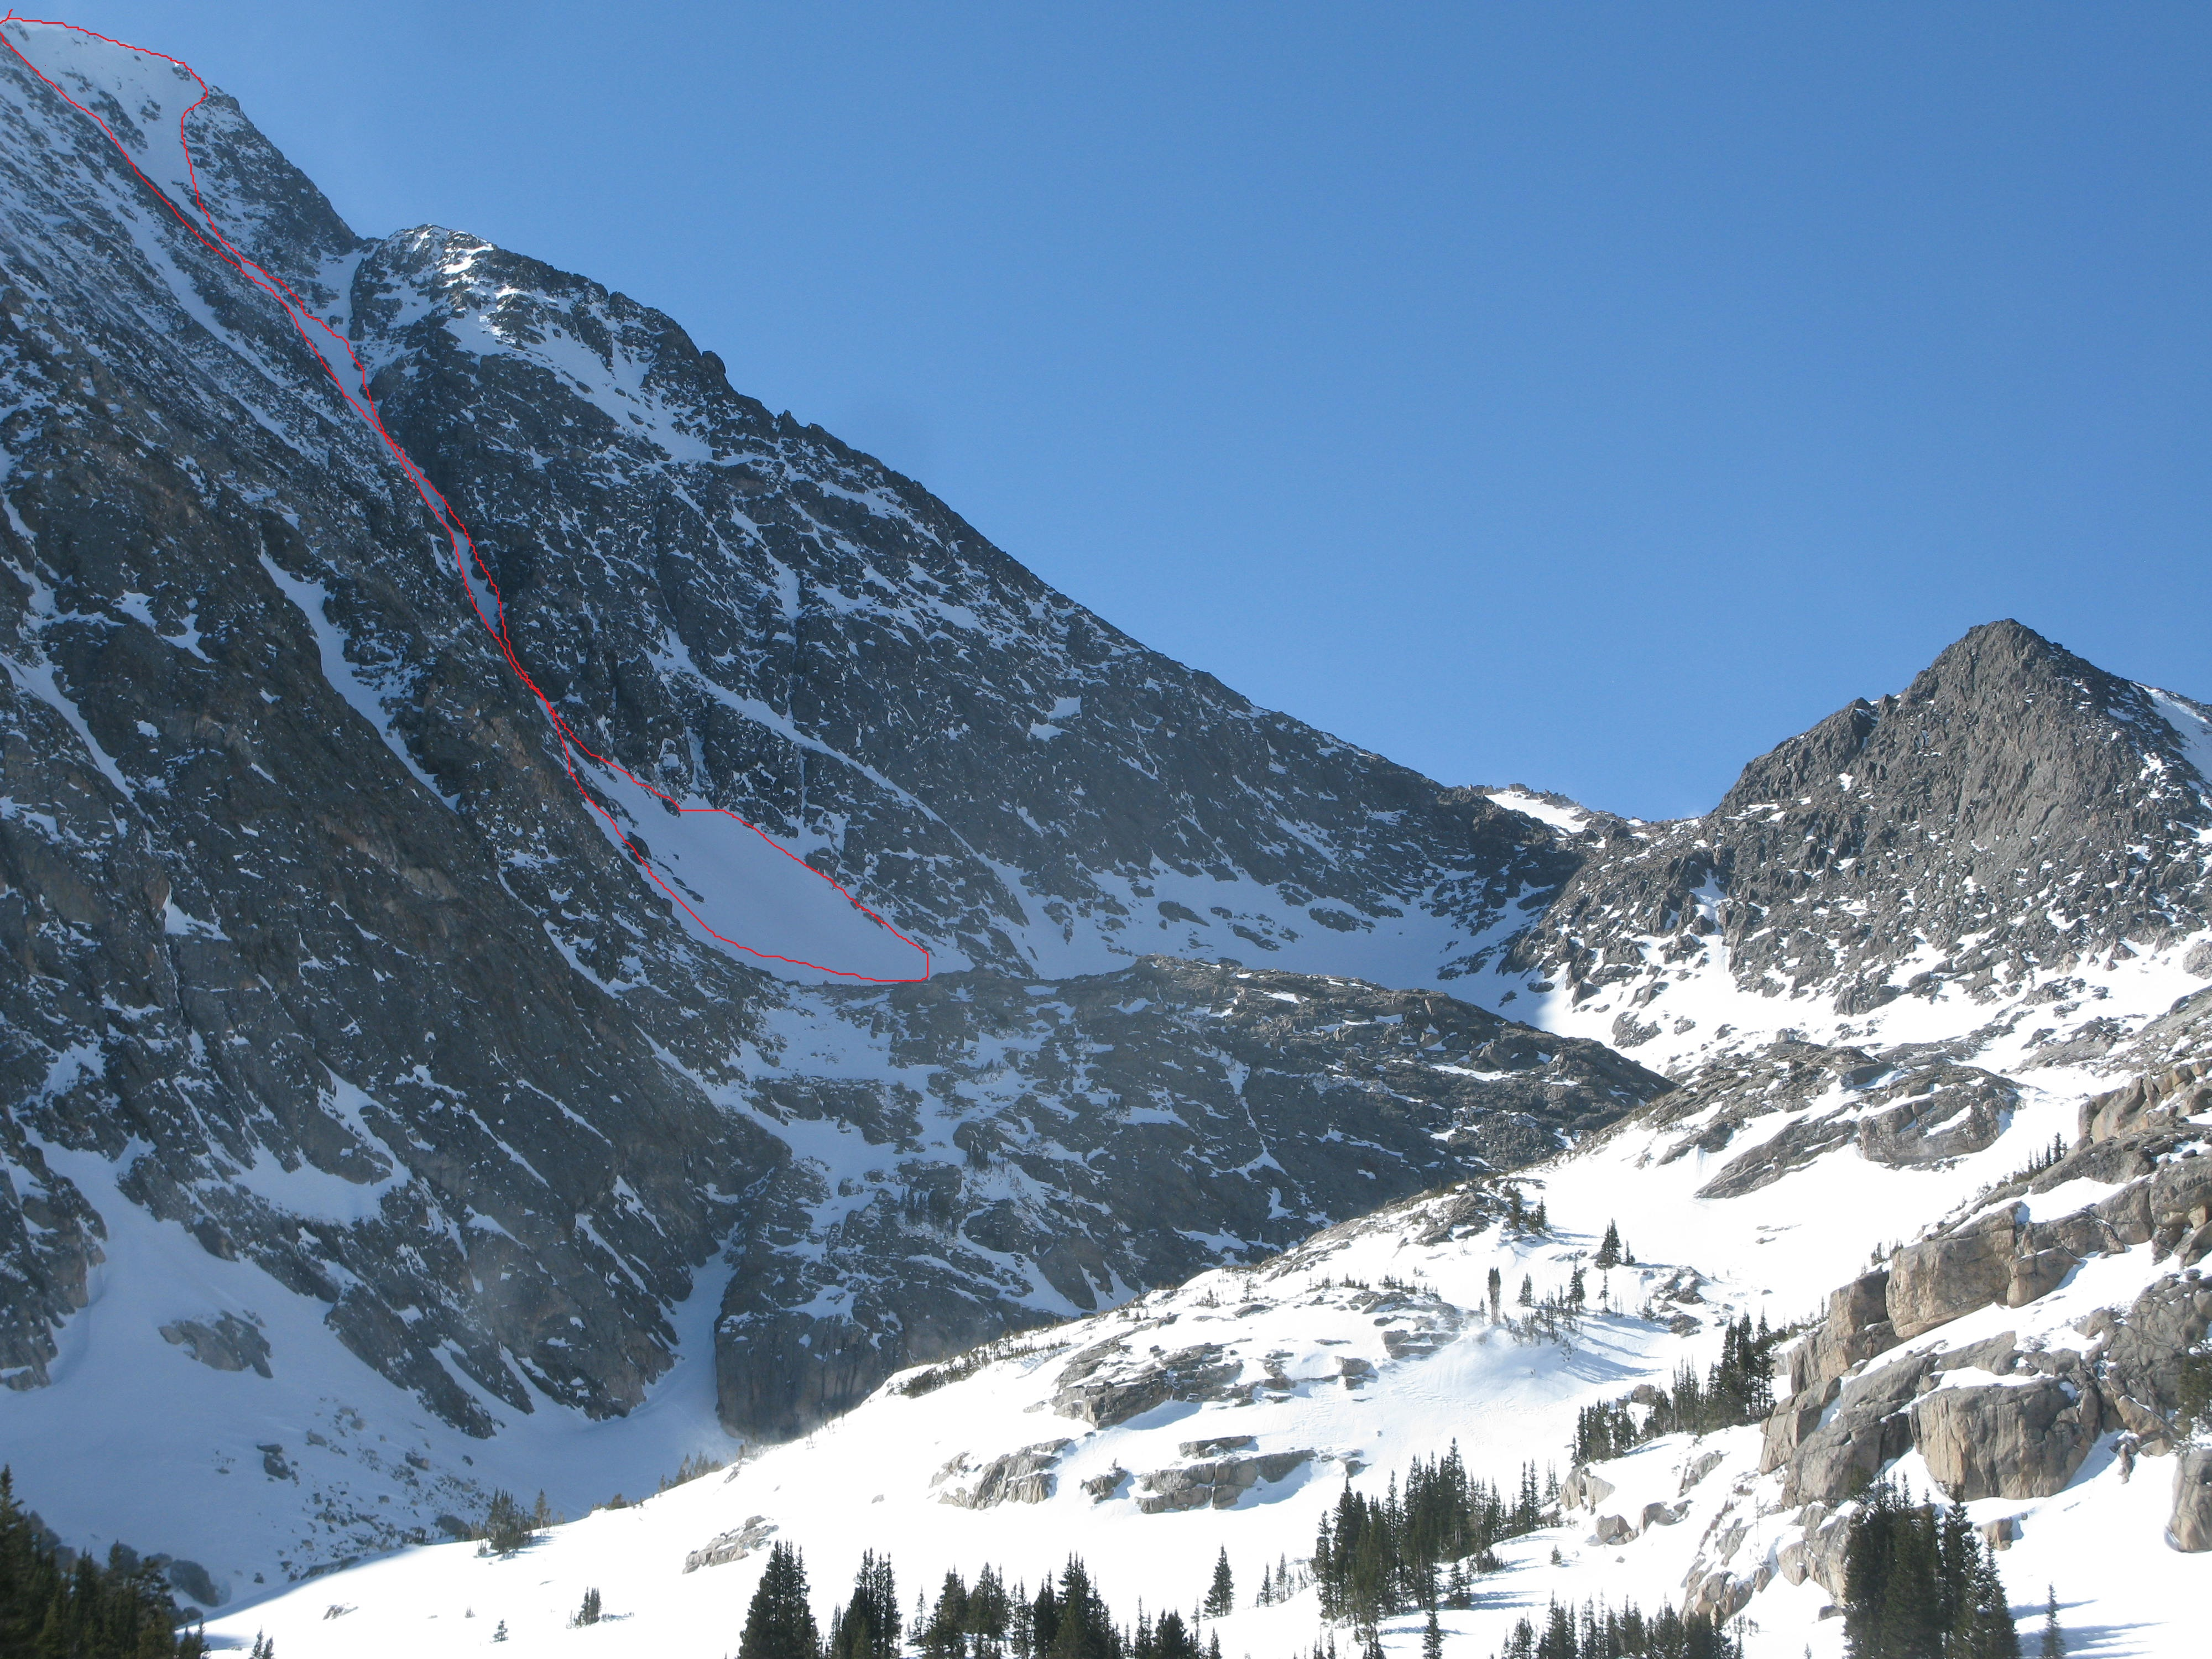 A close up view of the Northeast Couloir. Northeast facing slopes are particularly prone to wind loading.